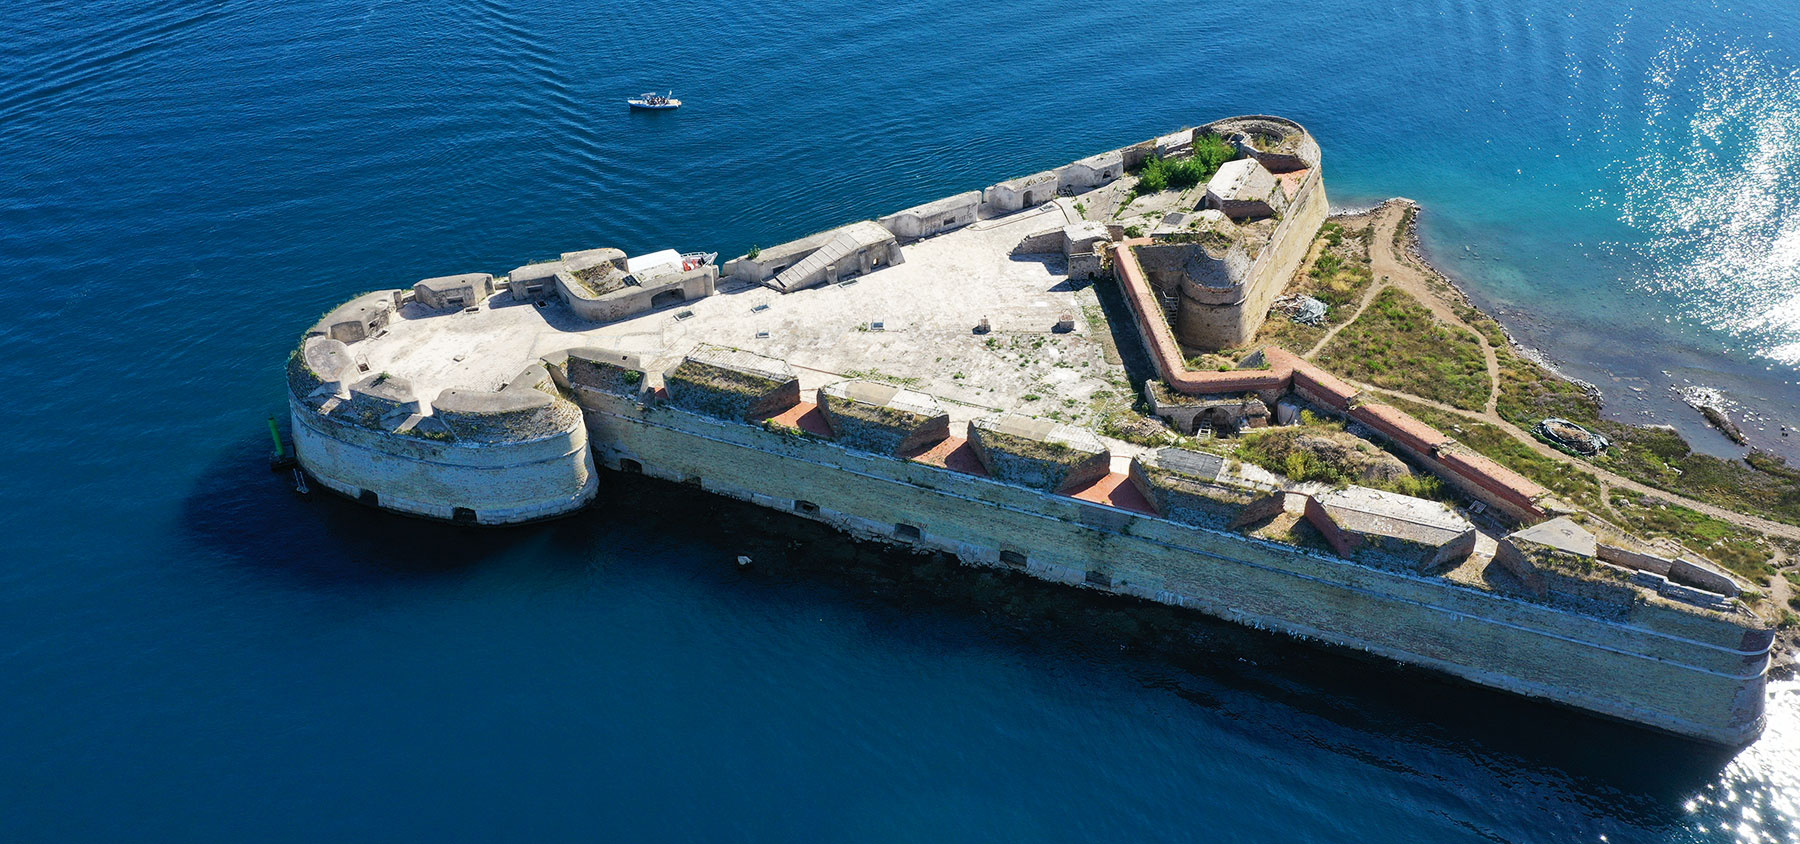 Aerial photo of the boat taken next to the fortress of Saint Nicholas'